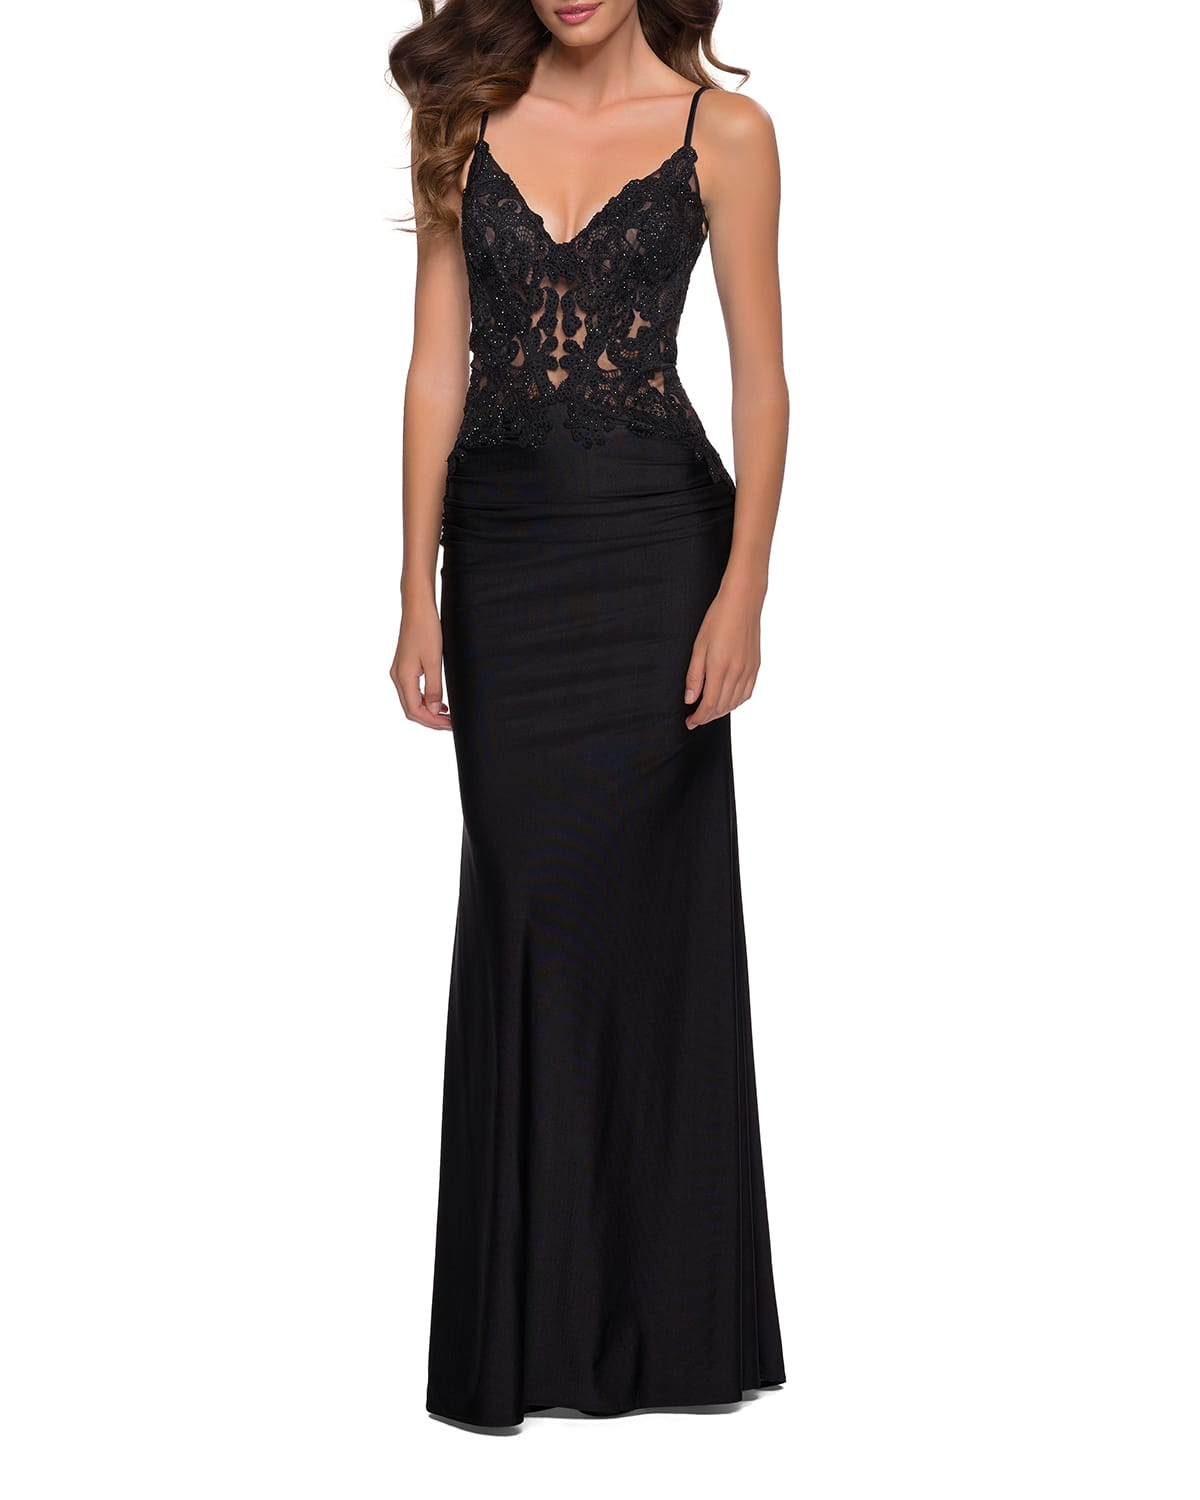 Sequined Lace Jersey Gown with Sheer Bodice